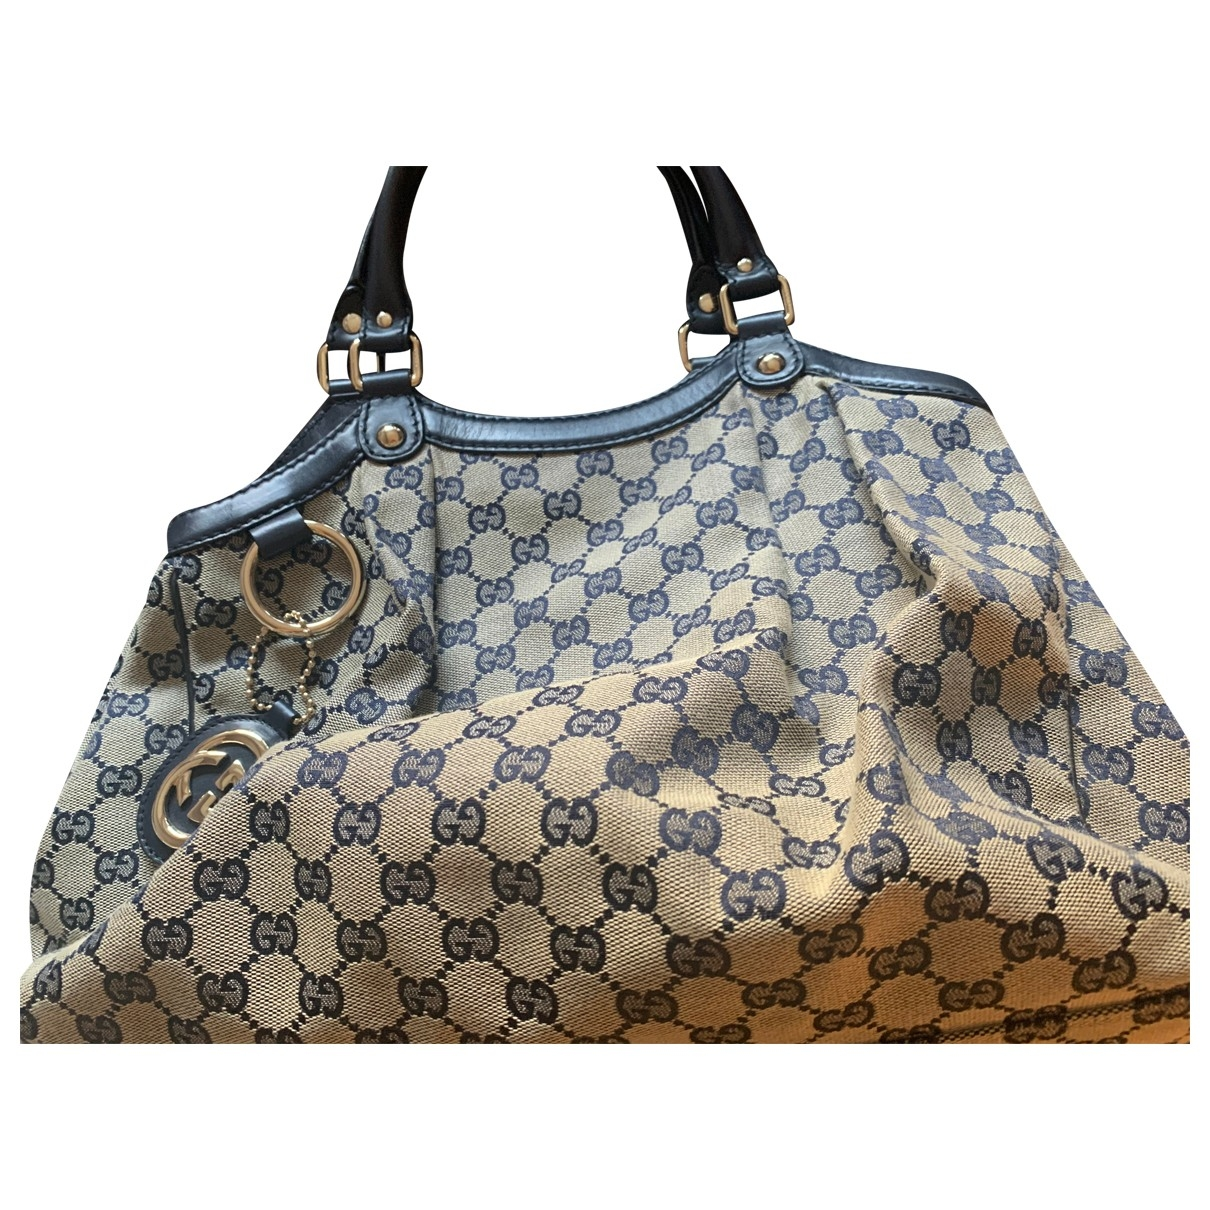 Gucci Sukey Blue Patent leather handbag for Women \N